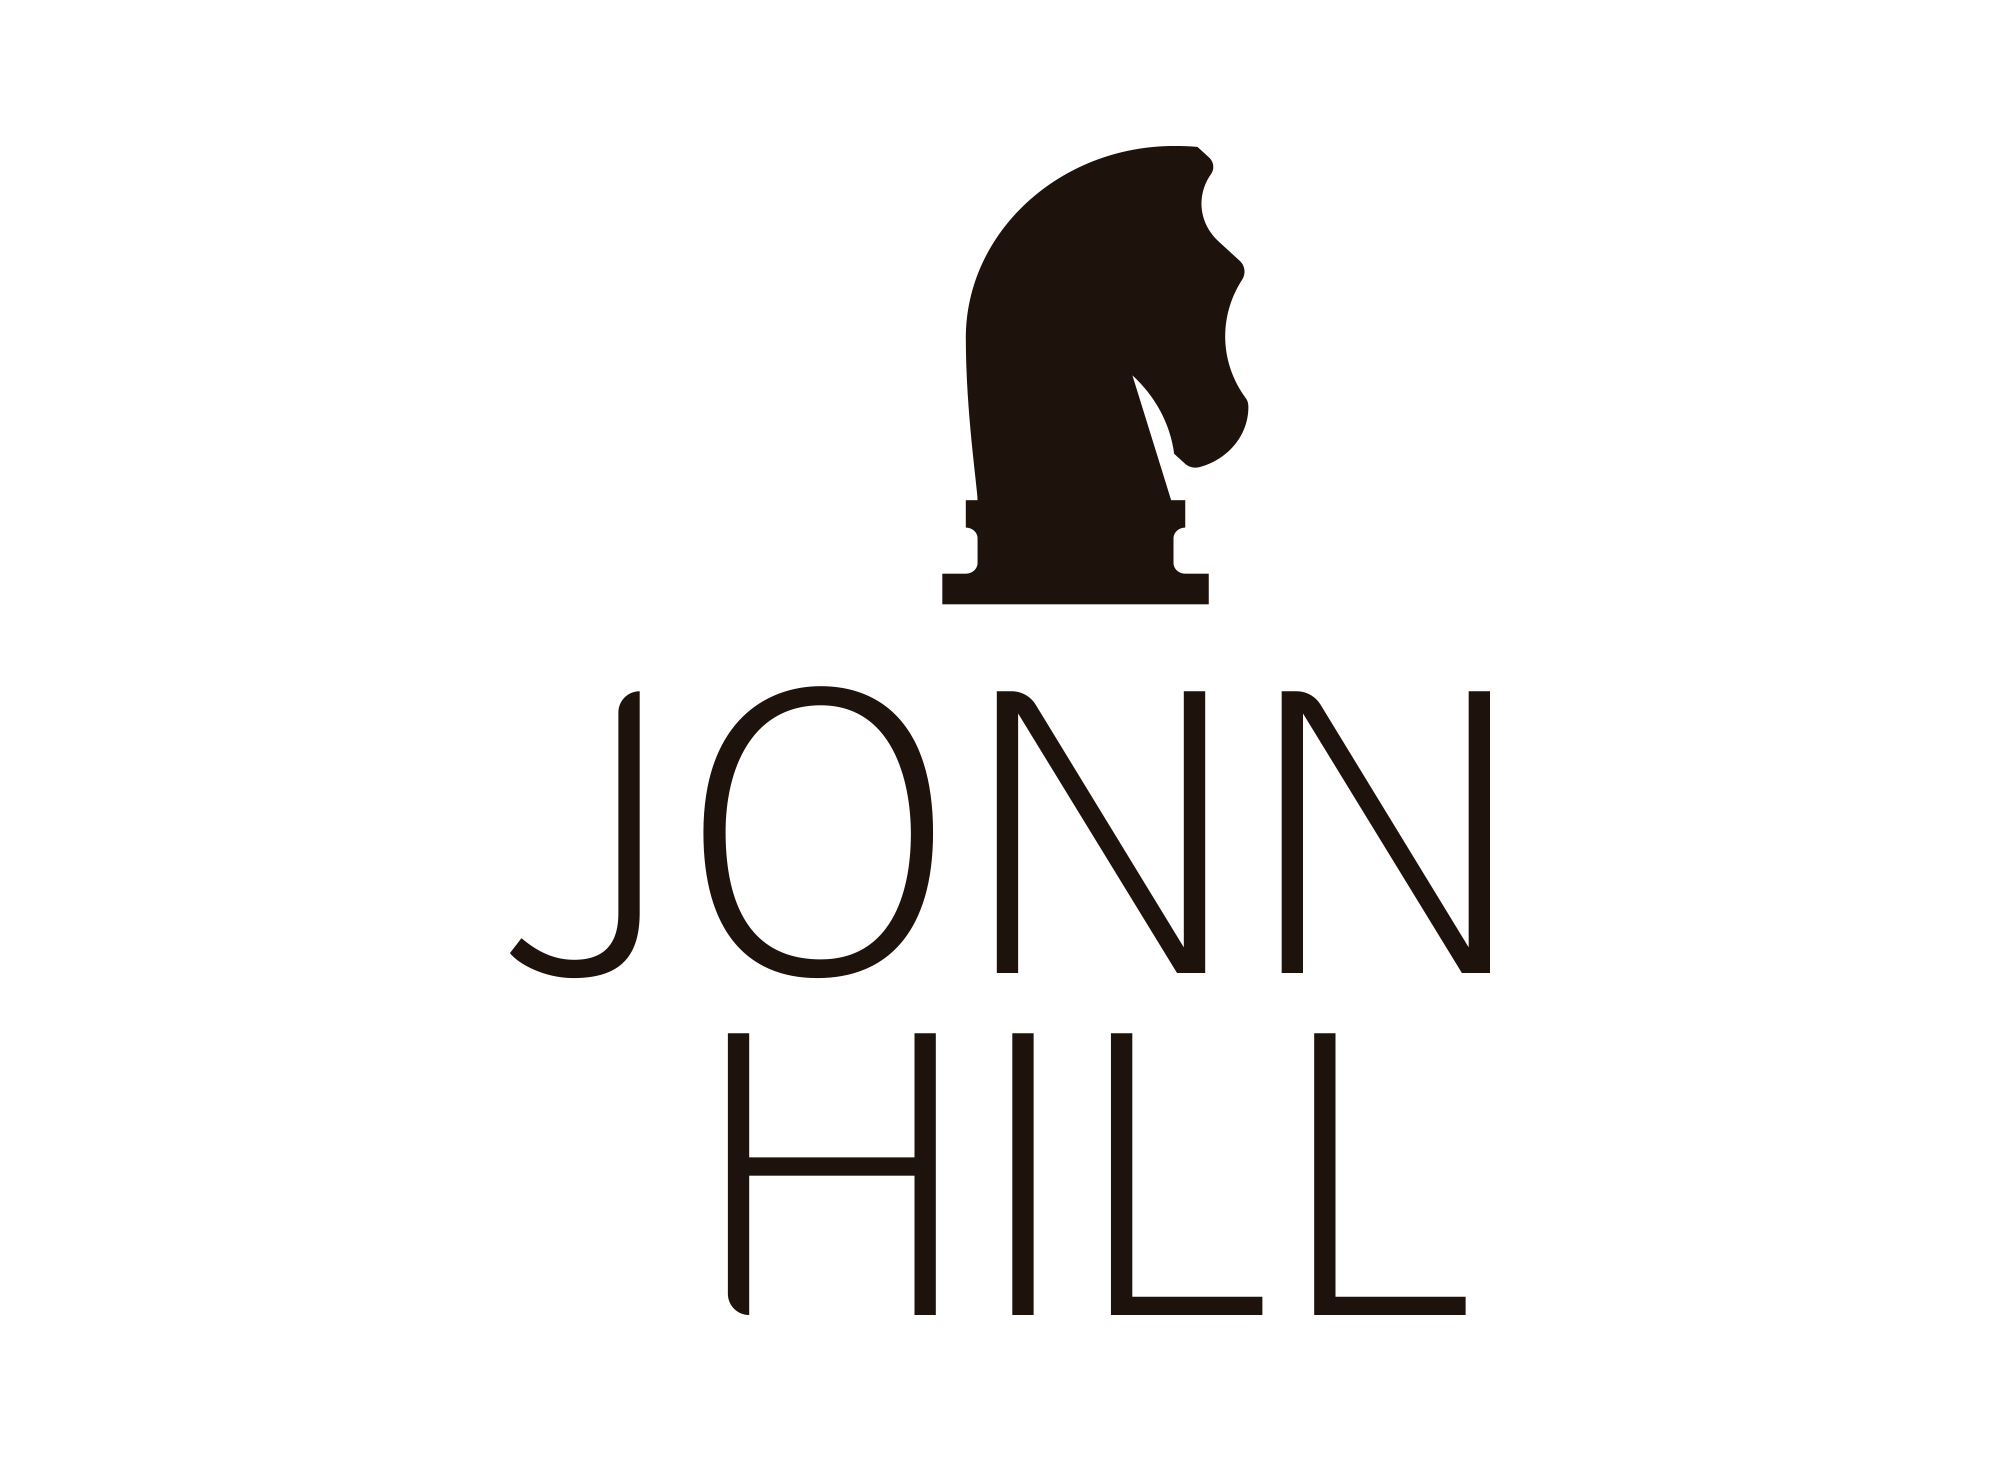 Jonn Hill Menswear - Agência de Marketing Digital em Fortaleza ... 57d8ae50550